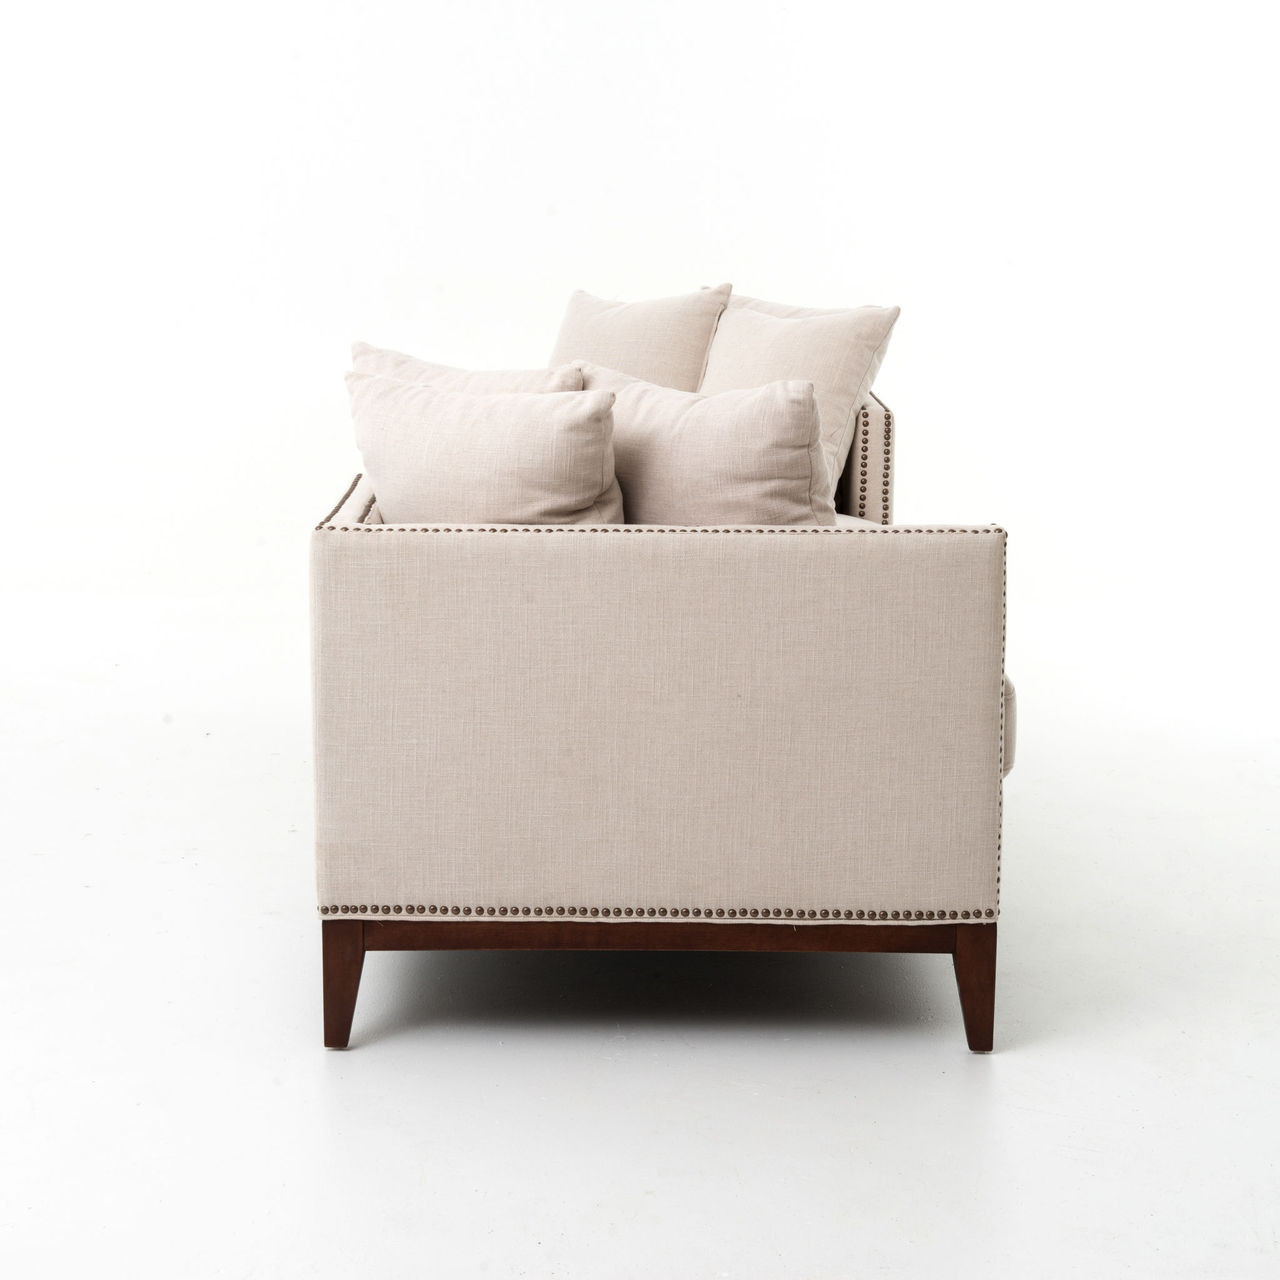 kensington chaise sofa bed gray color beige linen upholstered double daybed